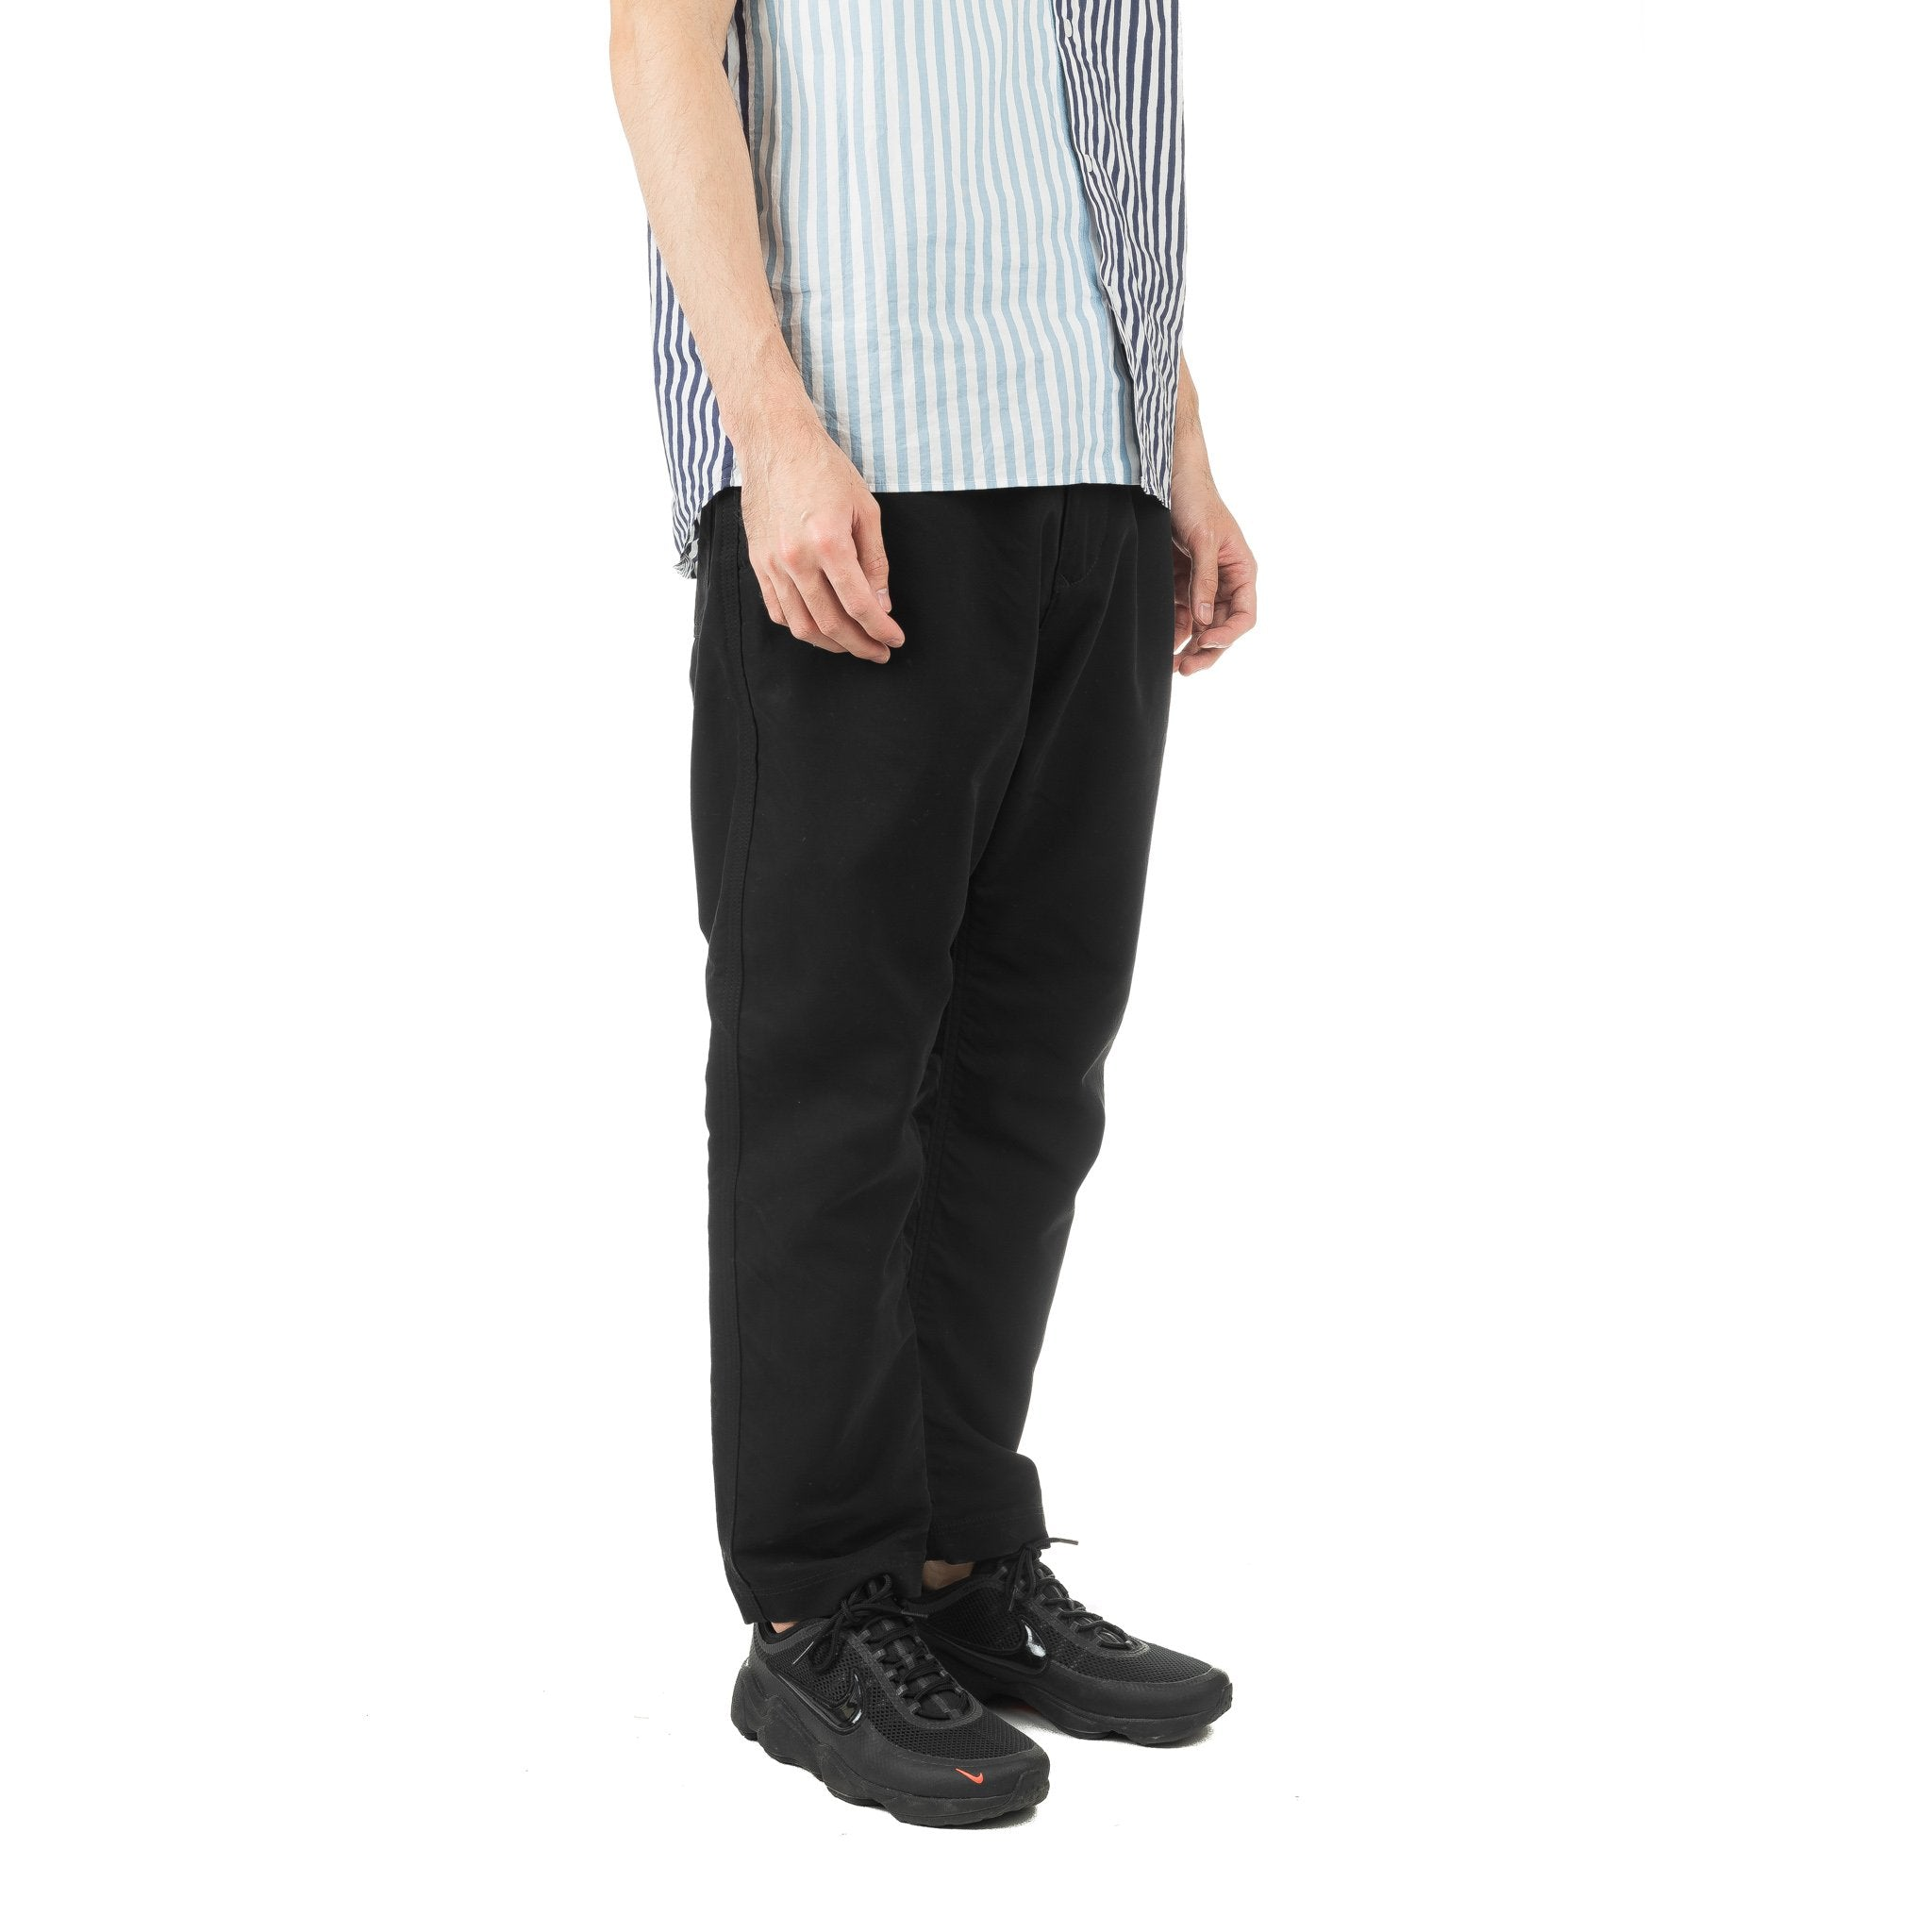 Puckering Sarouel Pants Black